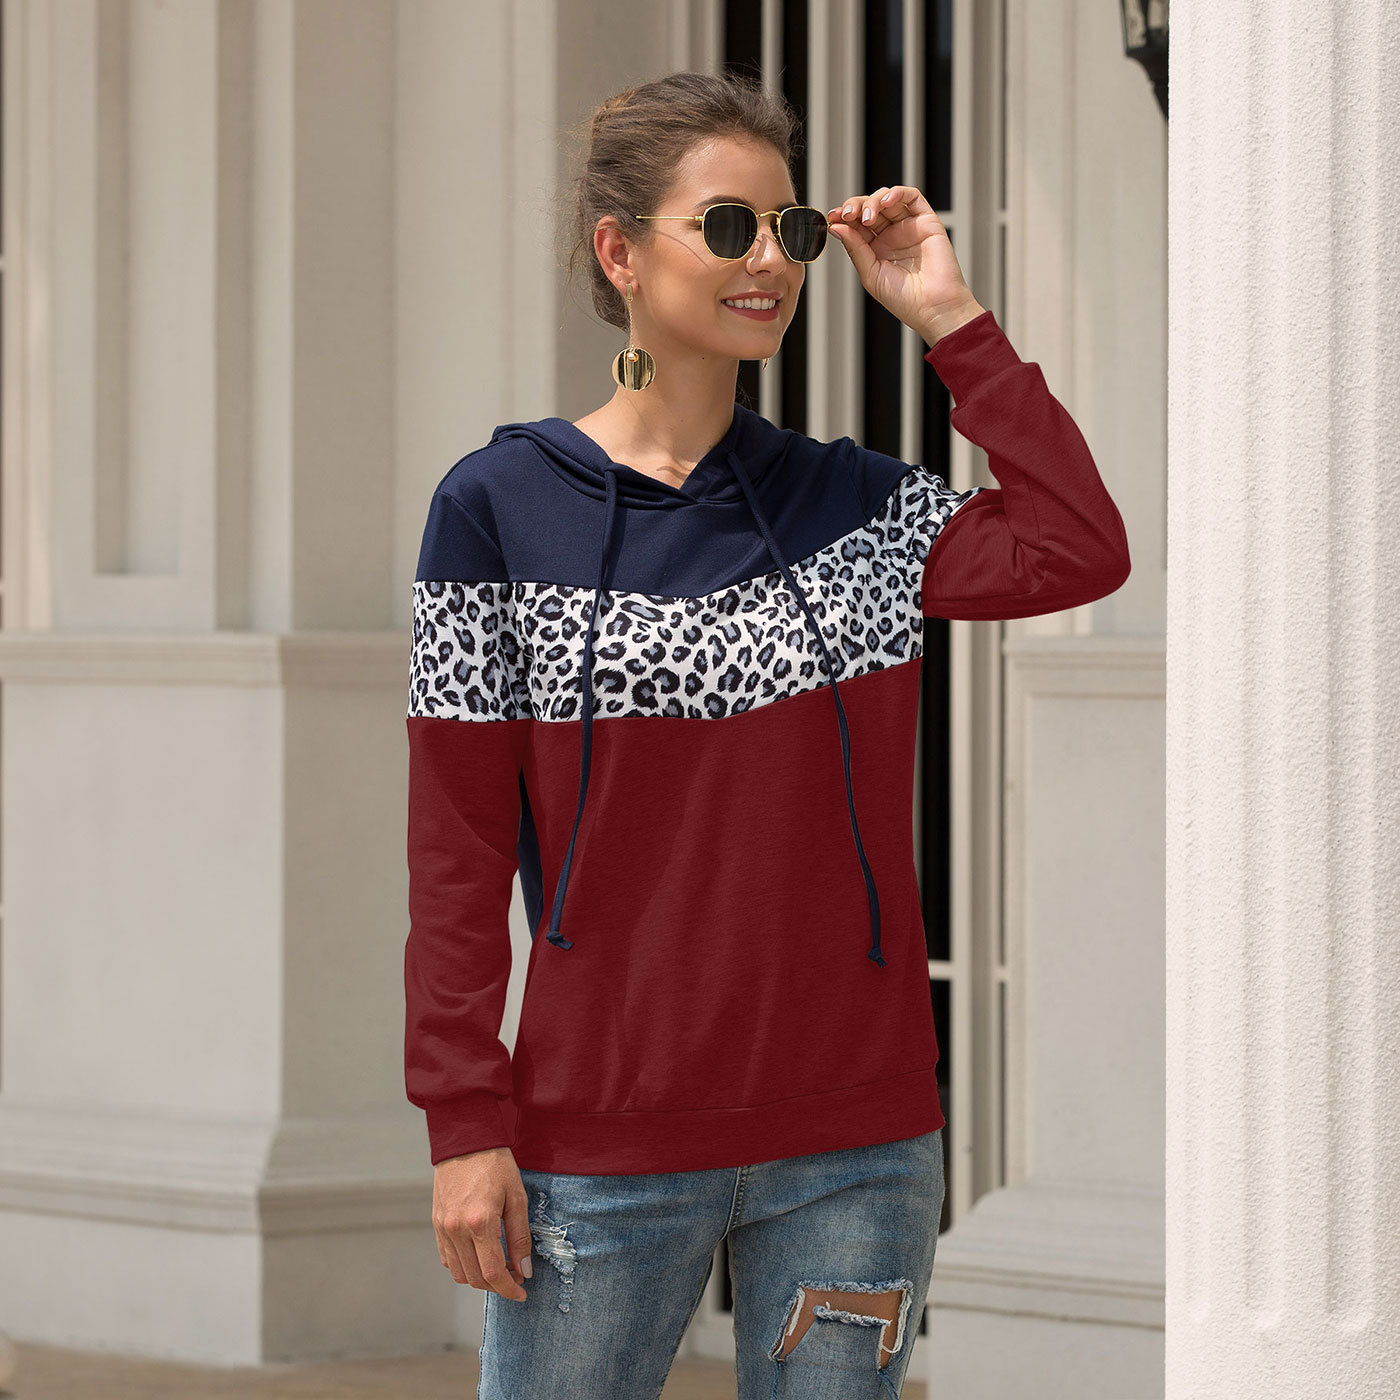 2019 Autumn And Winter New Women's  Jacket With Hooded Shirt Hot Leopard Stitching Hooded Drawstring Women